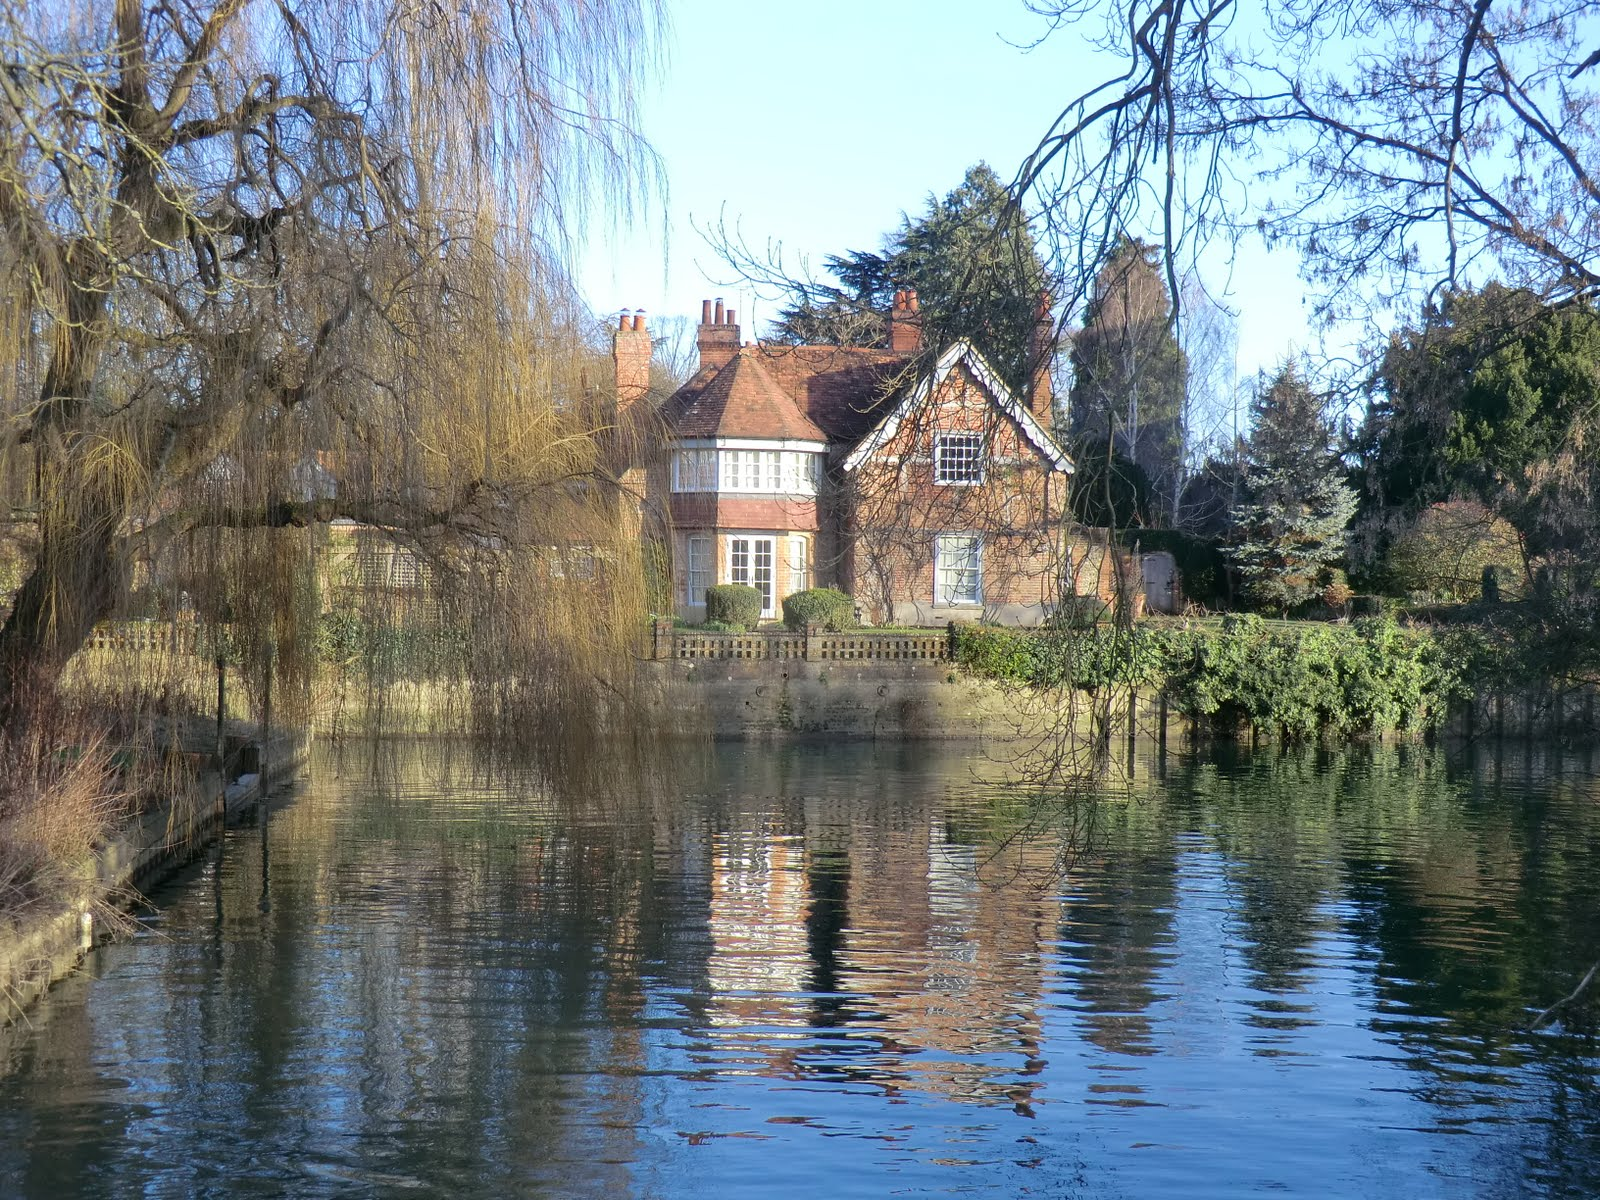 CIMG6681 Riverside house near Goring Mill